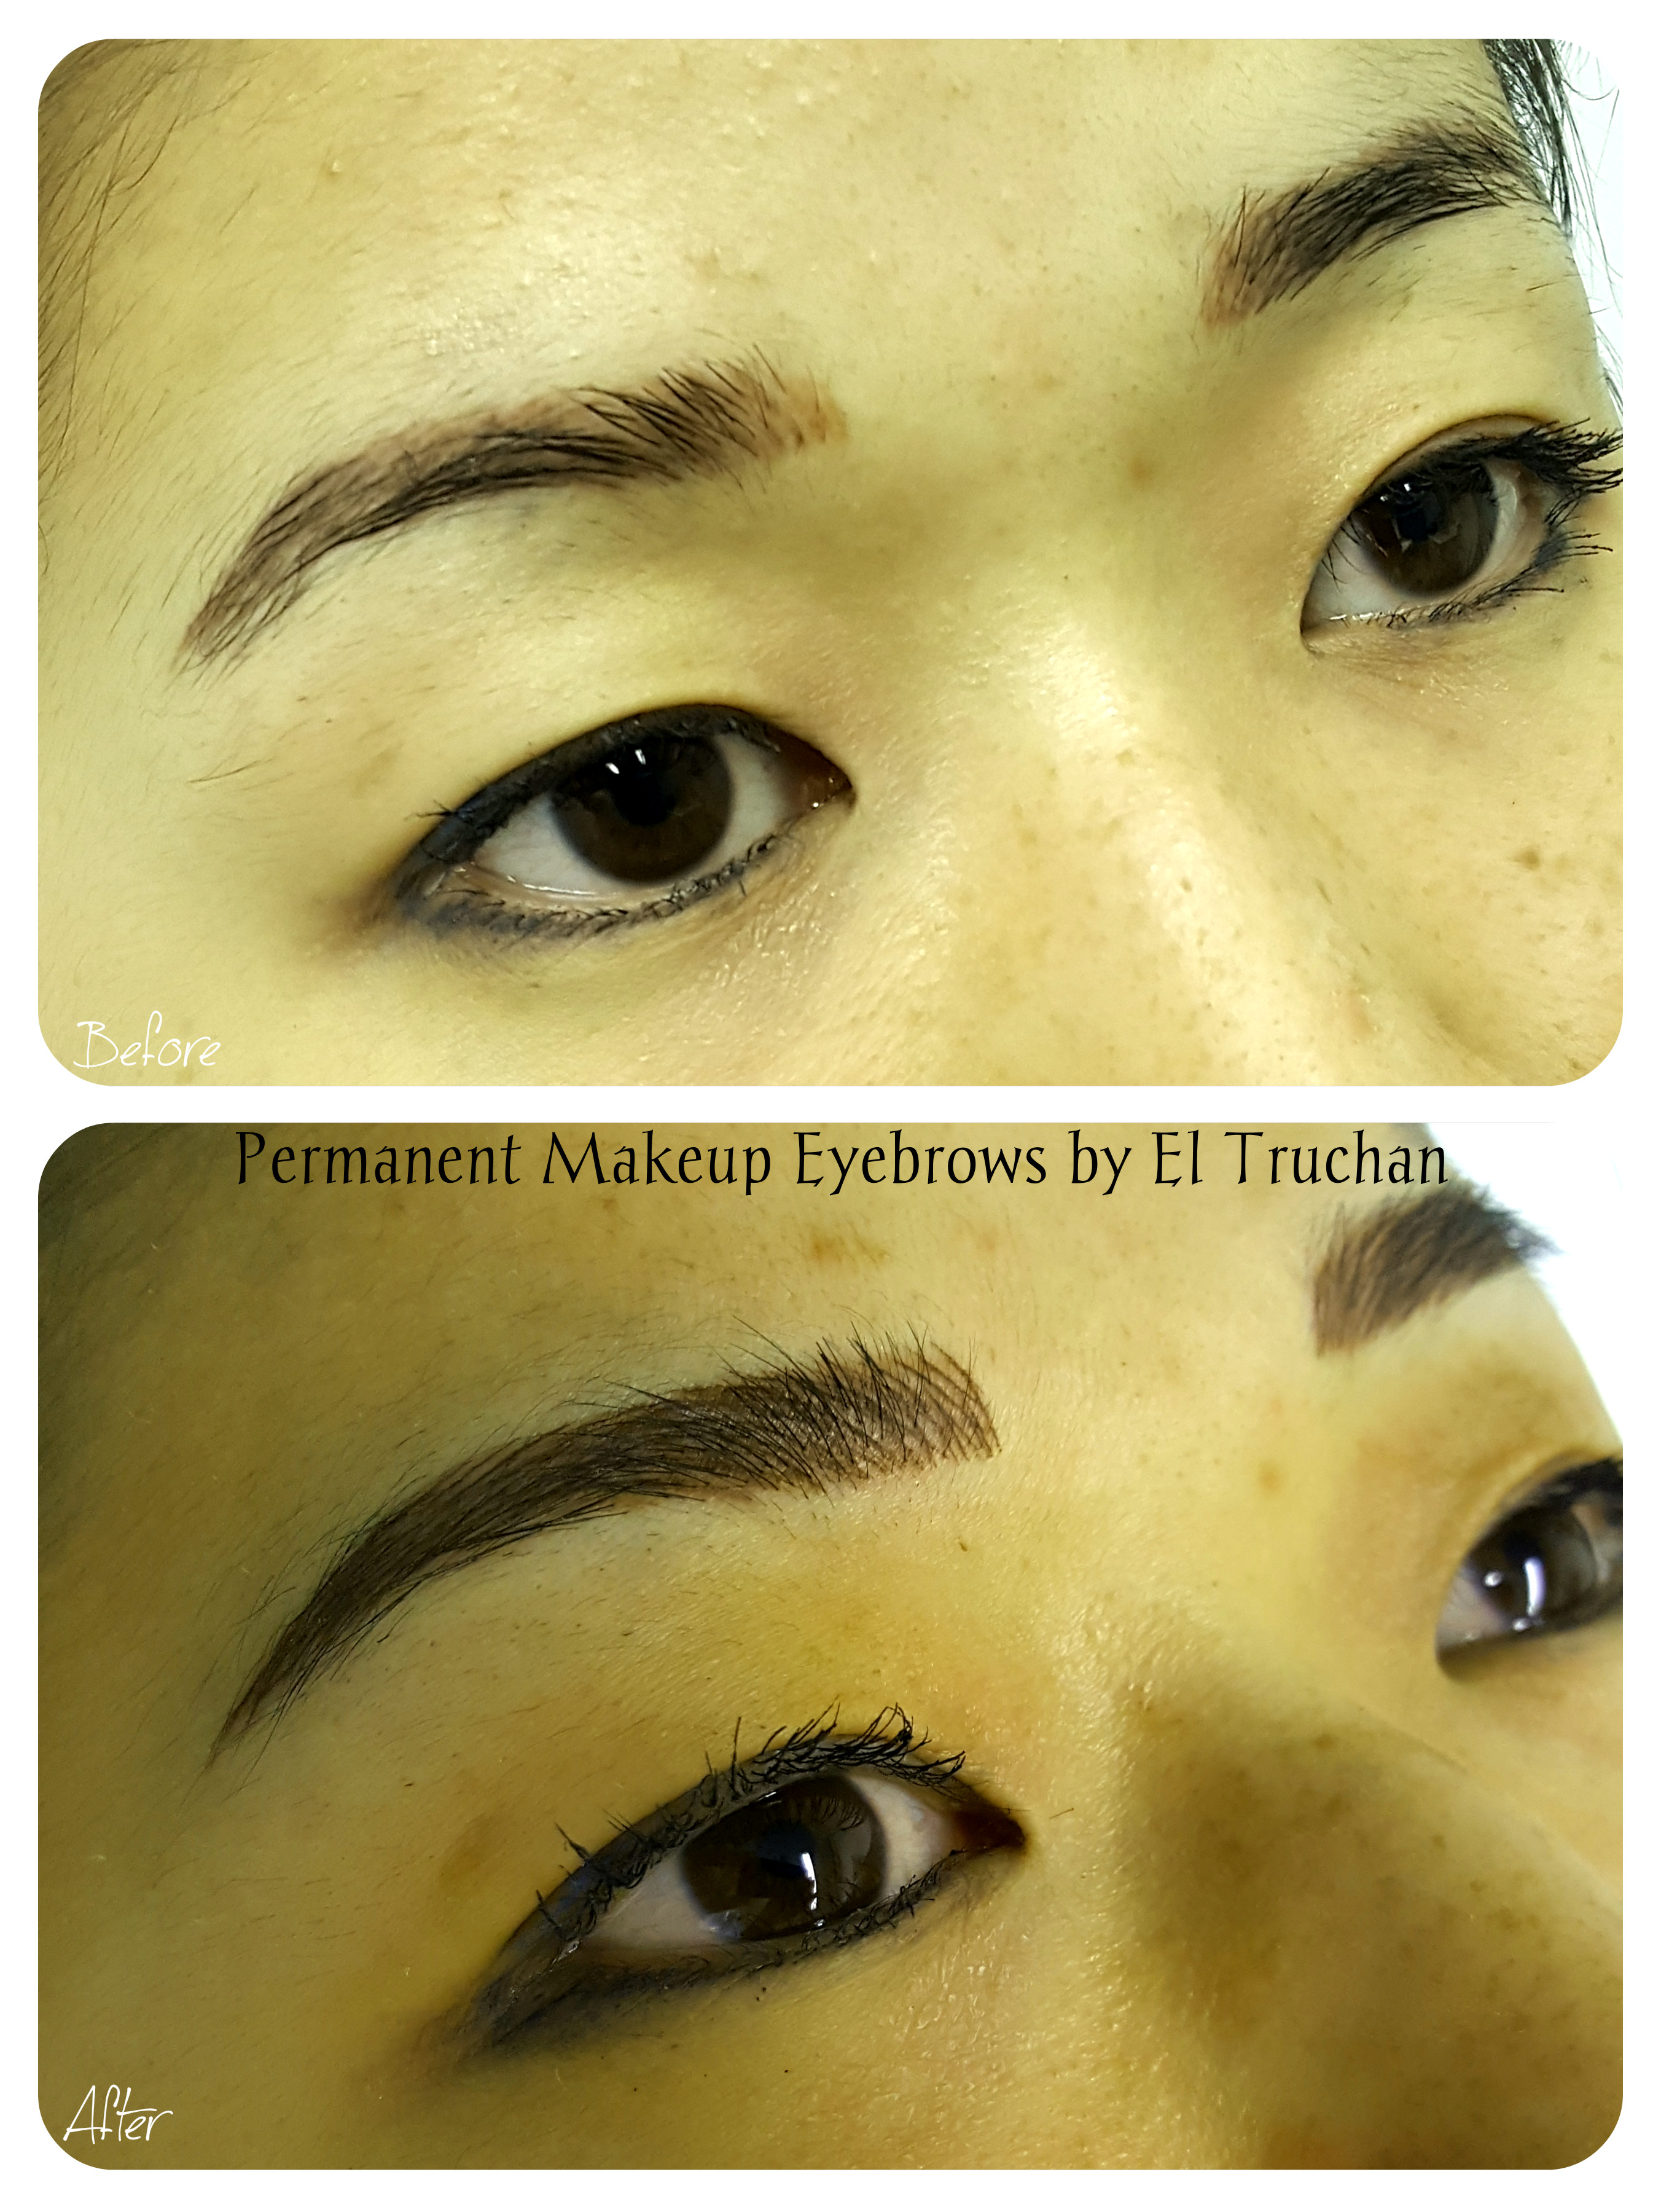 Permanent Makeup Cosmetic Tattoo Eyebrow  by El Truchan